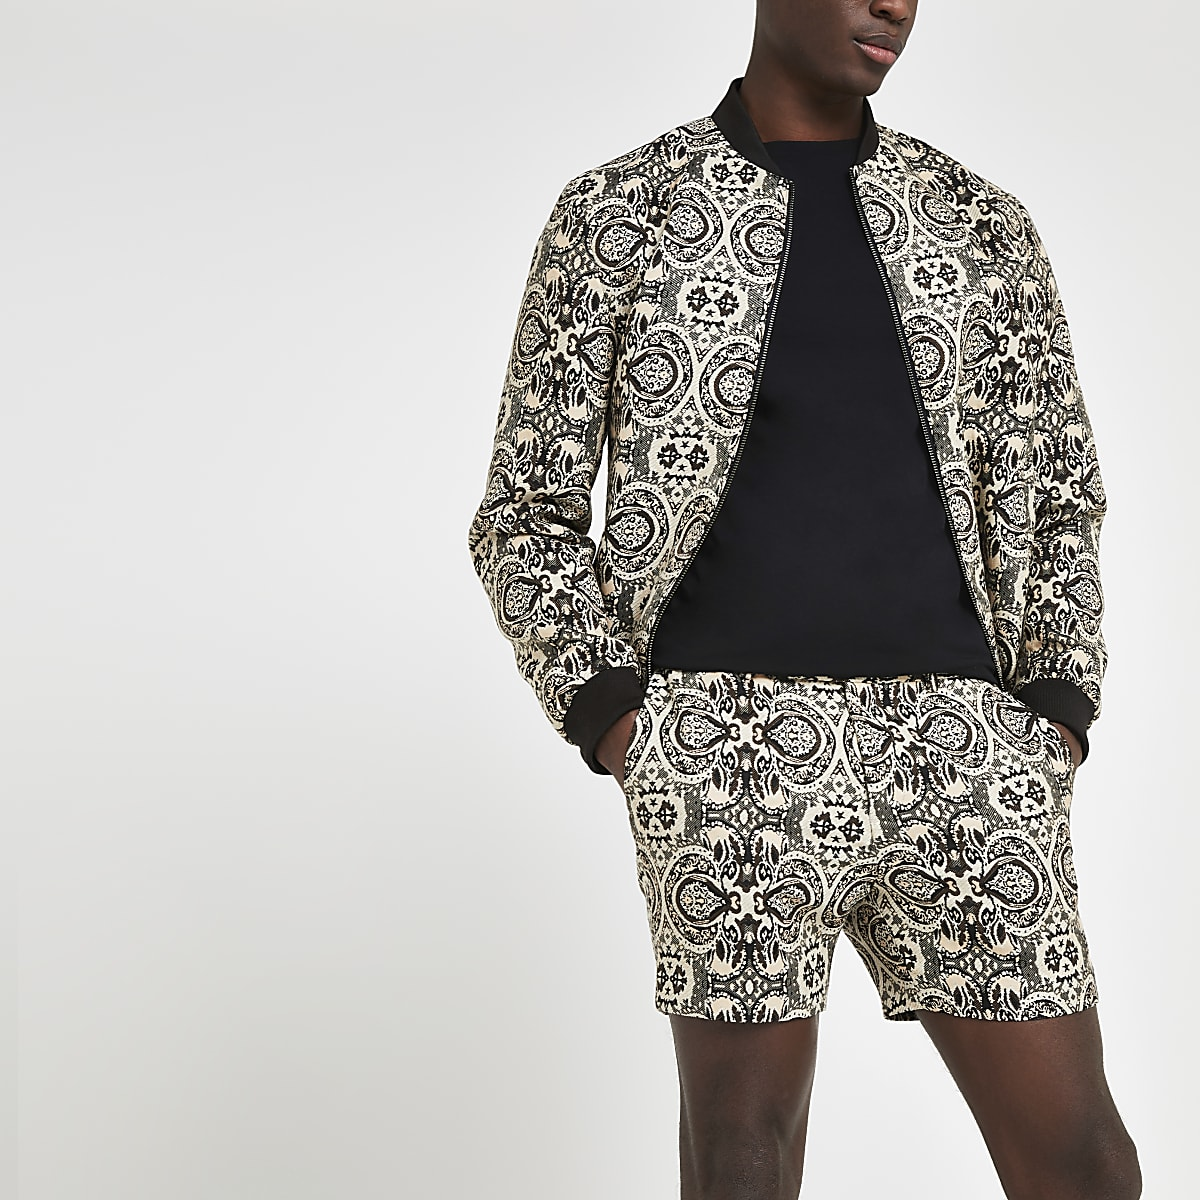 Ecru printed tailored shorts